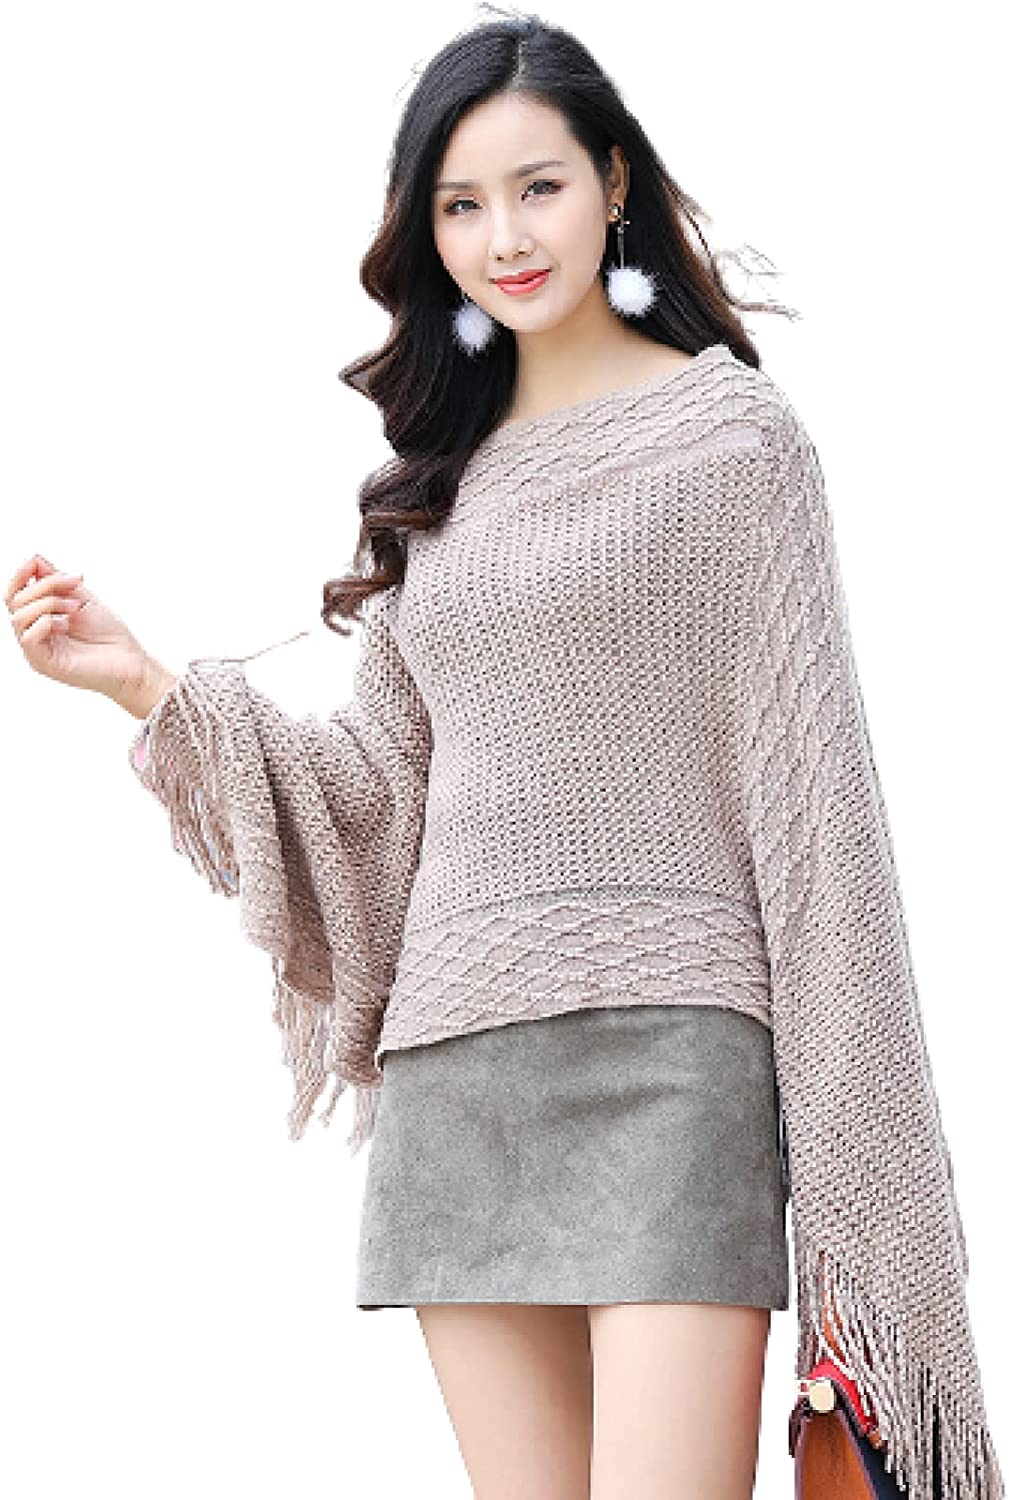 xinghaikuajing Scarf New Sweater Shawl and safety Autumn Double 2021 Spring